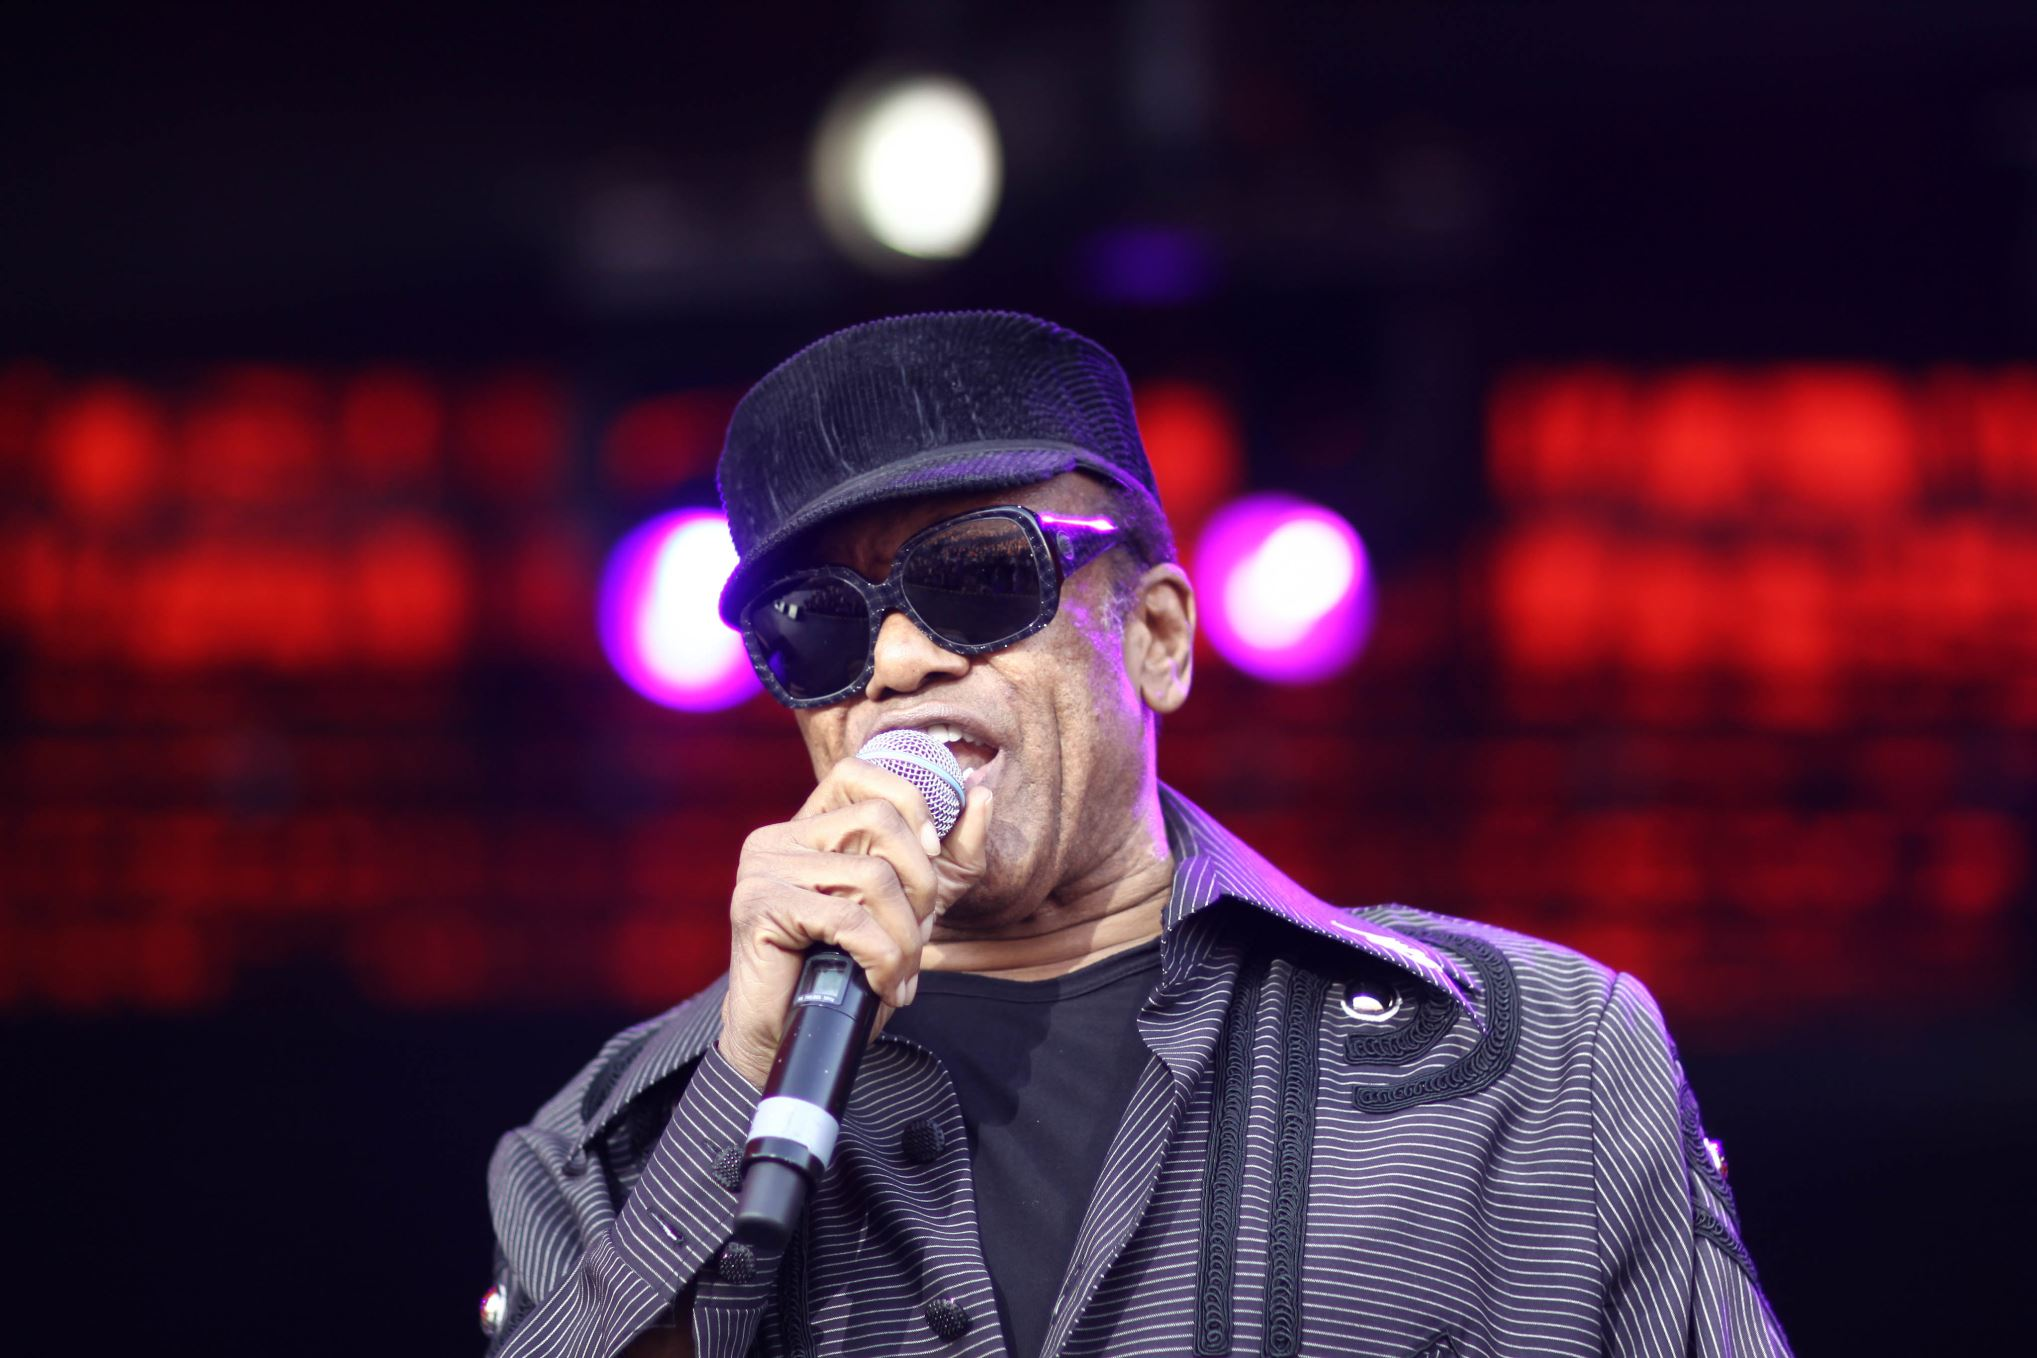 Suffering from numerous health issues like prostate cancer, colon cancer, pneumonia, and Alzheimer's disease, the singer of hits like Lookin' For a Love and If You Think You're Lonely Now died at the age of 70.